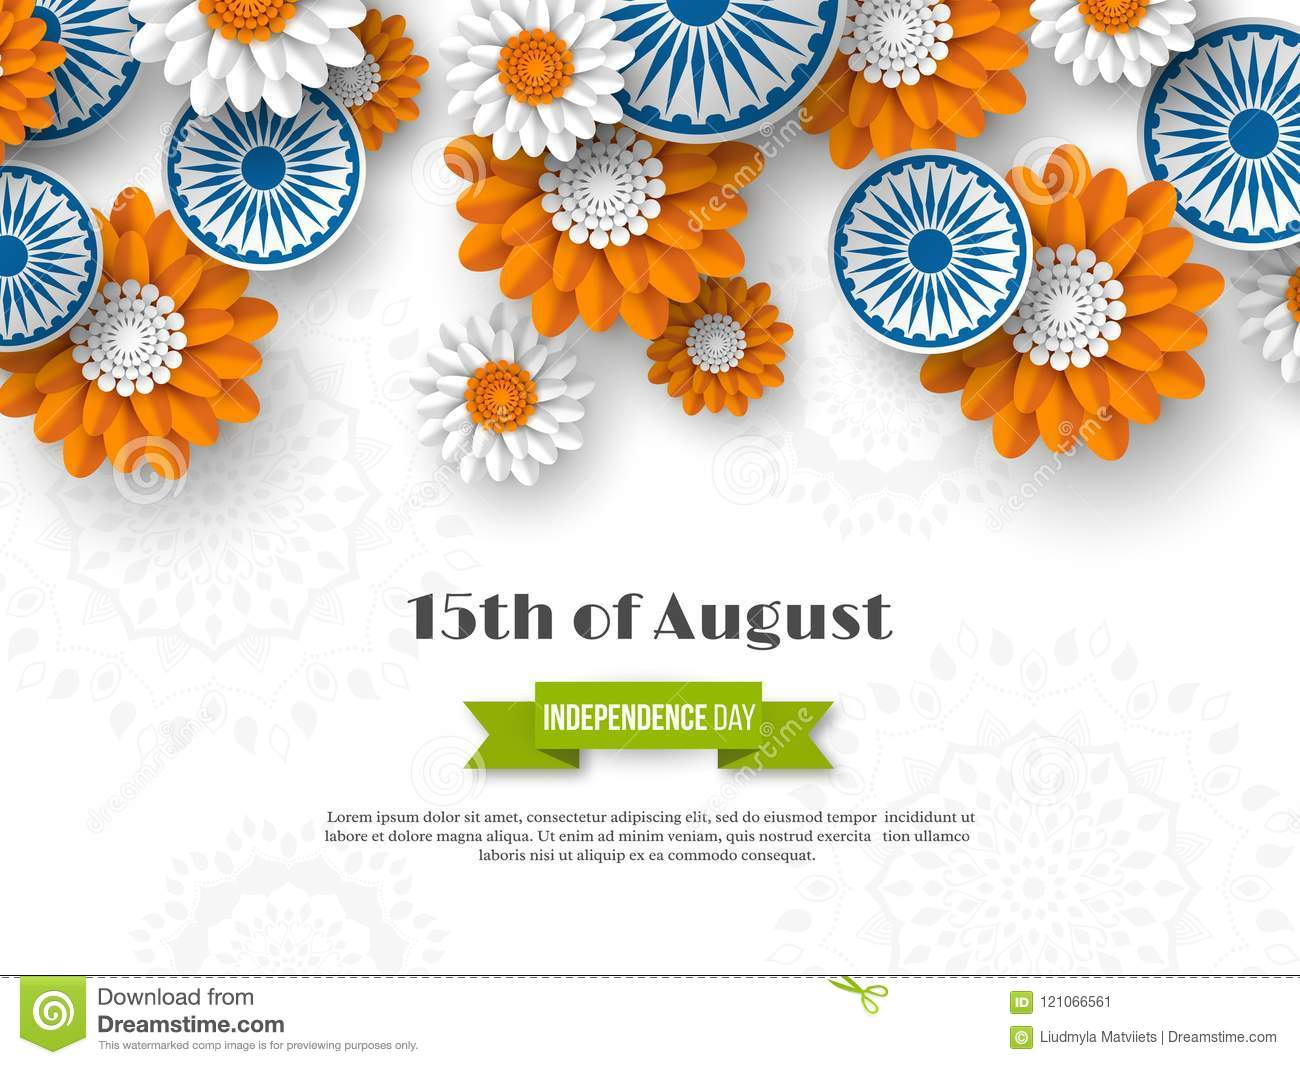 Indian independence day holiday design 3d wheels with flowers in download indian independence day holiday design 3d wheels with flowers in traditional tricolor of indian mightylinksfo